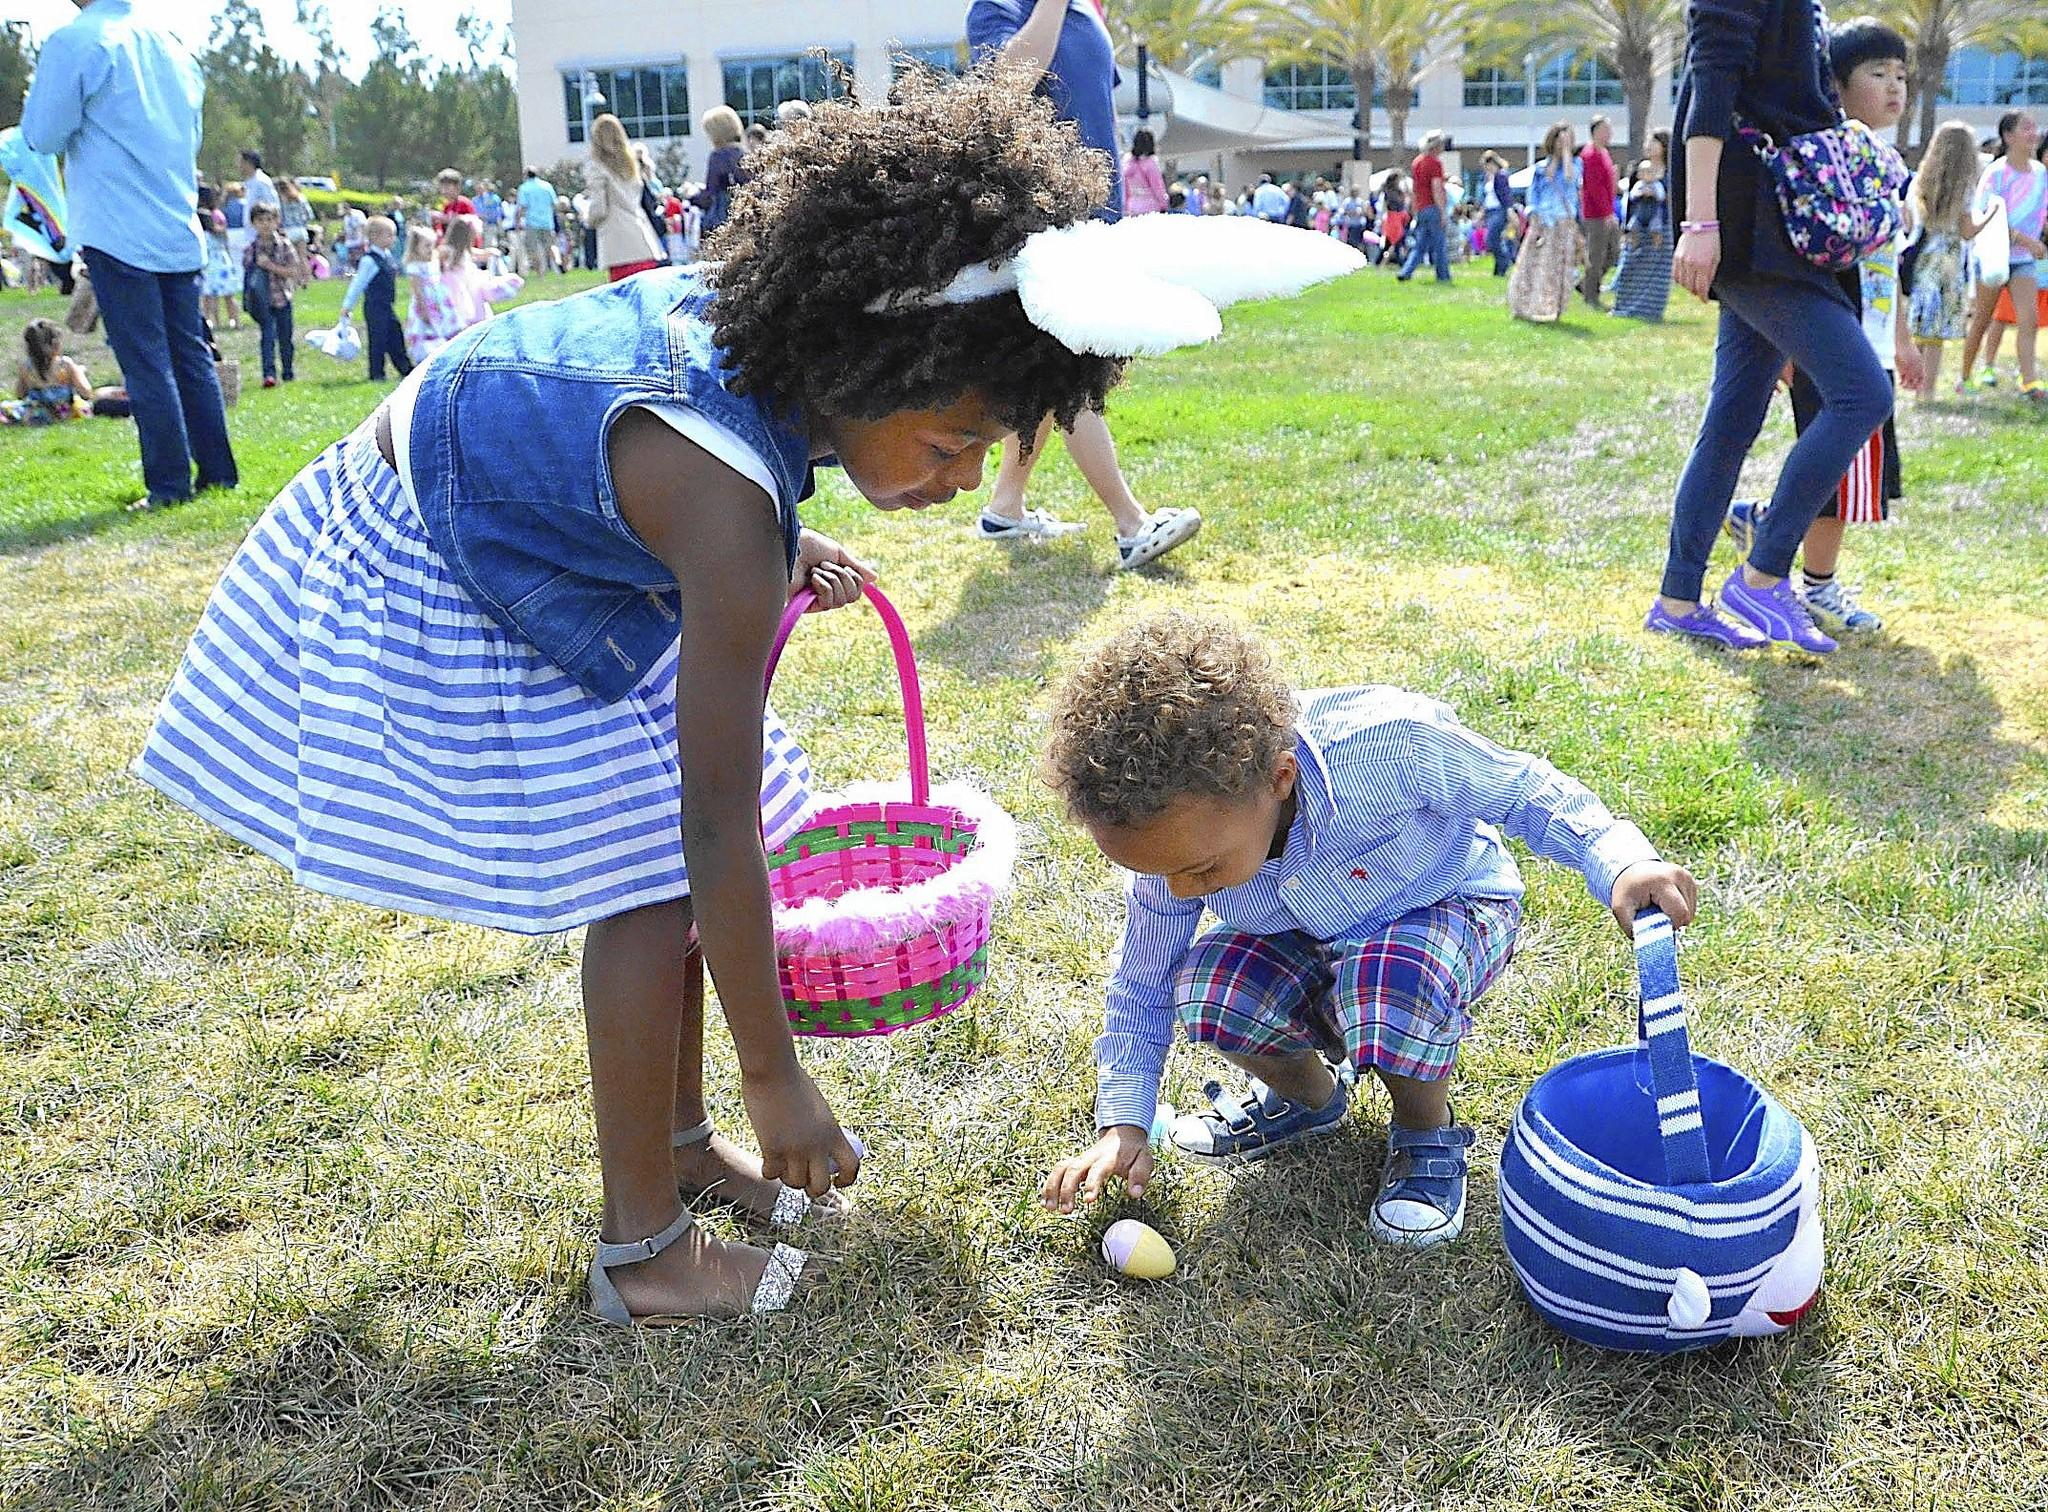 Leah Browne helps Knox De Allen gather candy filled eggs during the annual easter egg hunt at Mariners Church on Saturday.